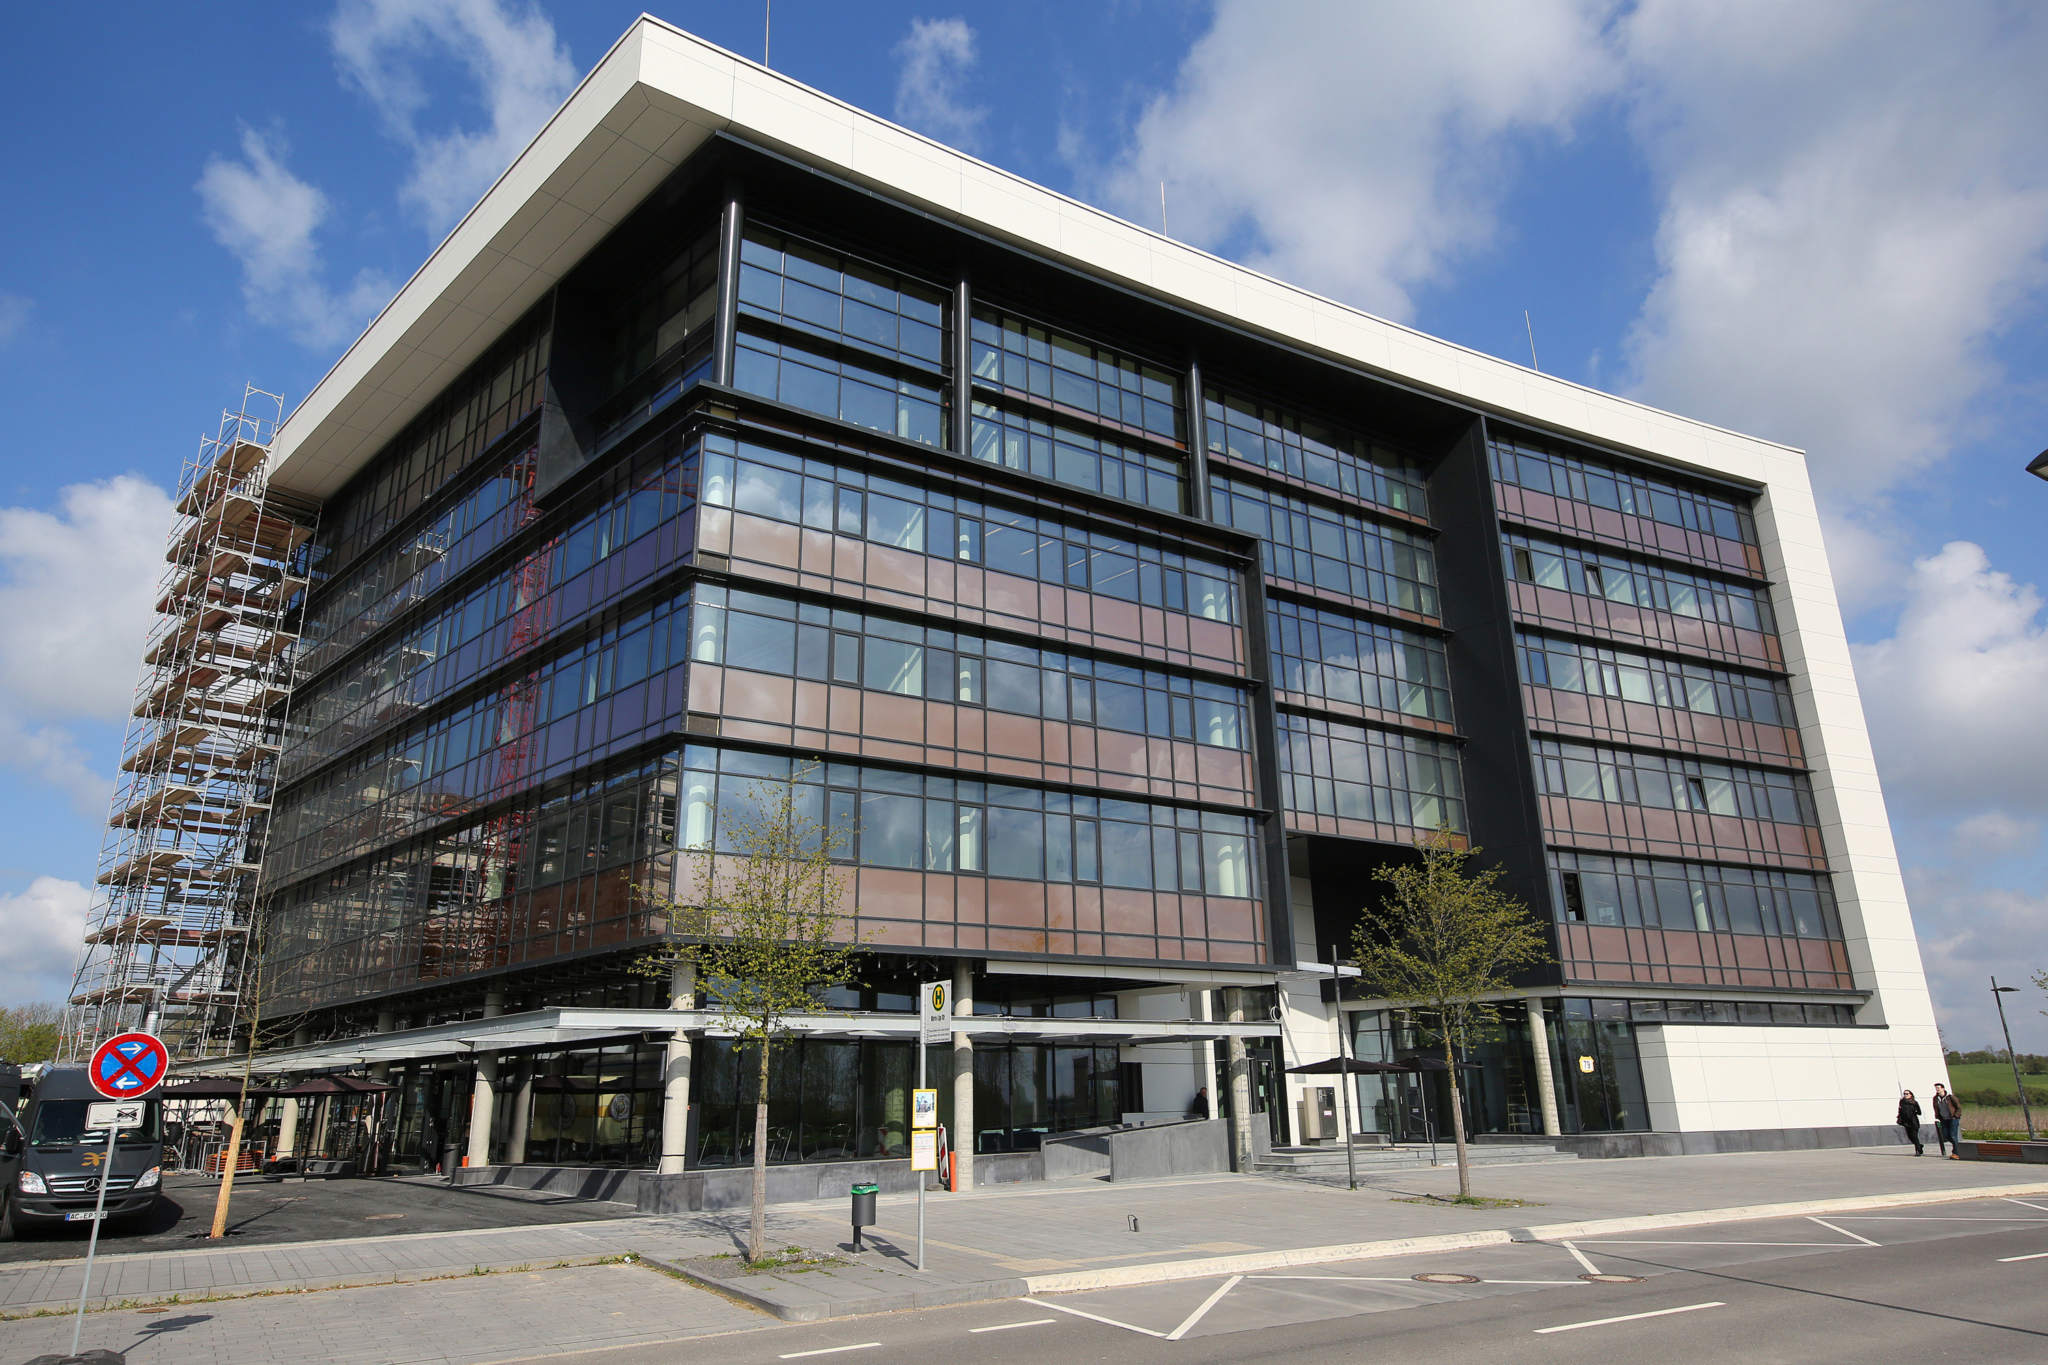 The newly built Digital Photonic Production industry building at RWTH. Photo via RWTH.